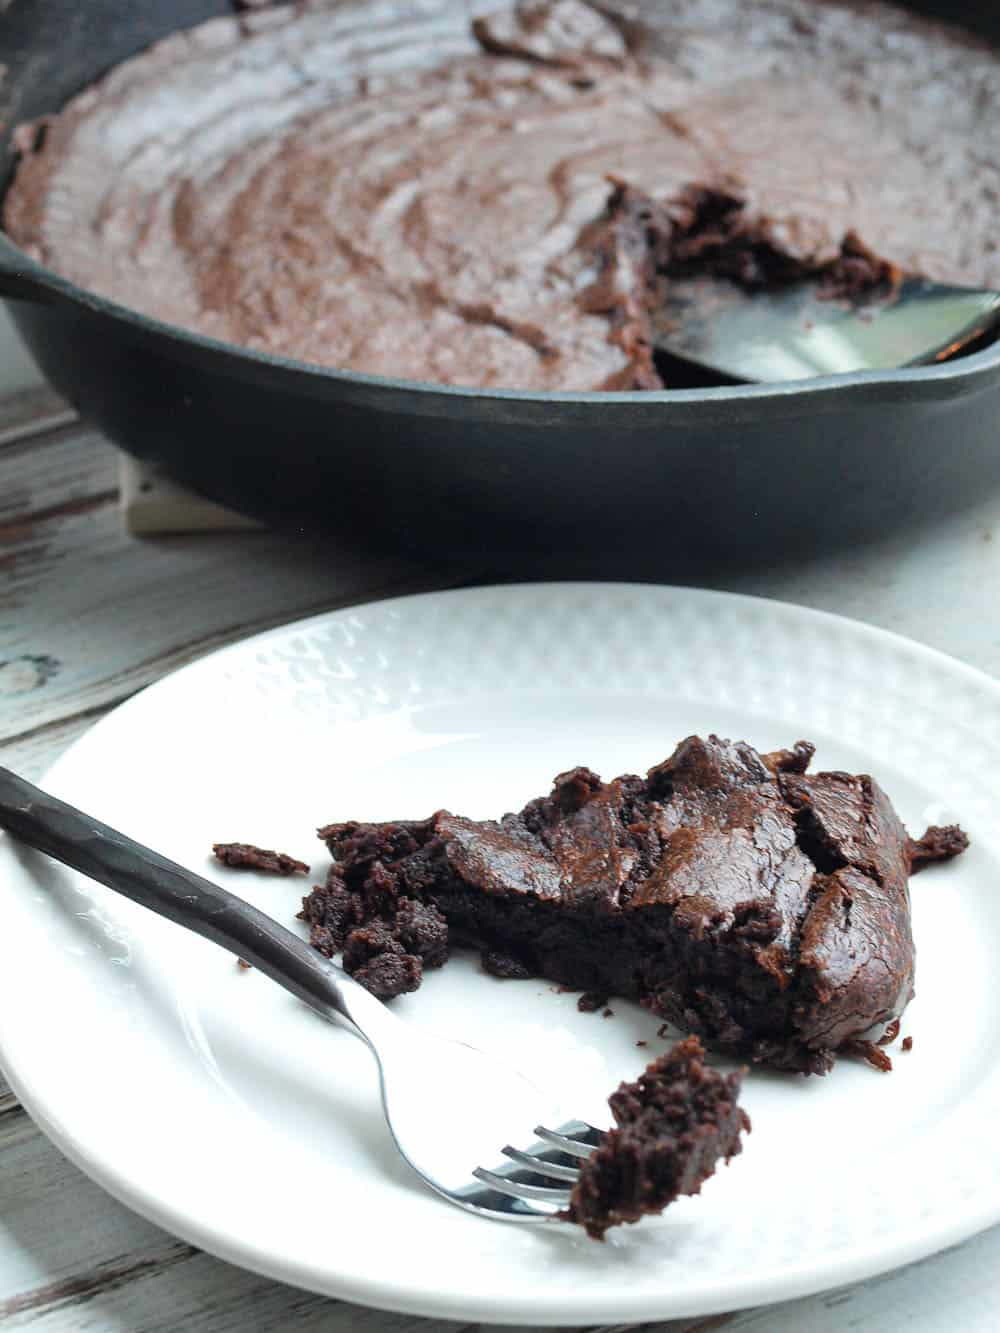 Chocolate Fudge Banana Cake | Healthy Cast Iron Skillet Recipes for Dessert